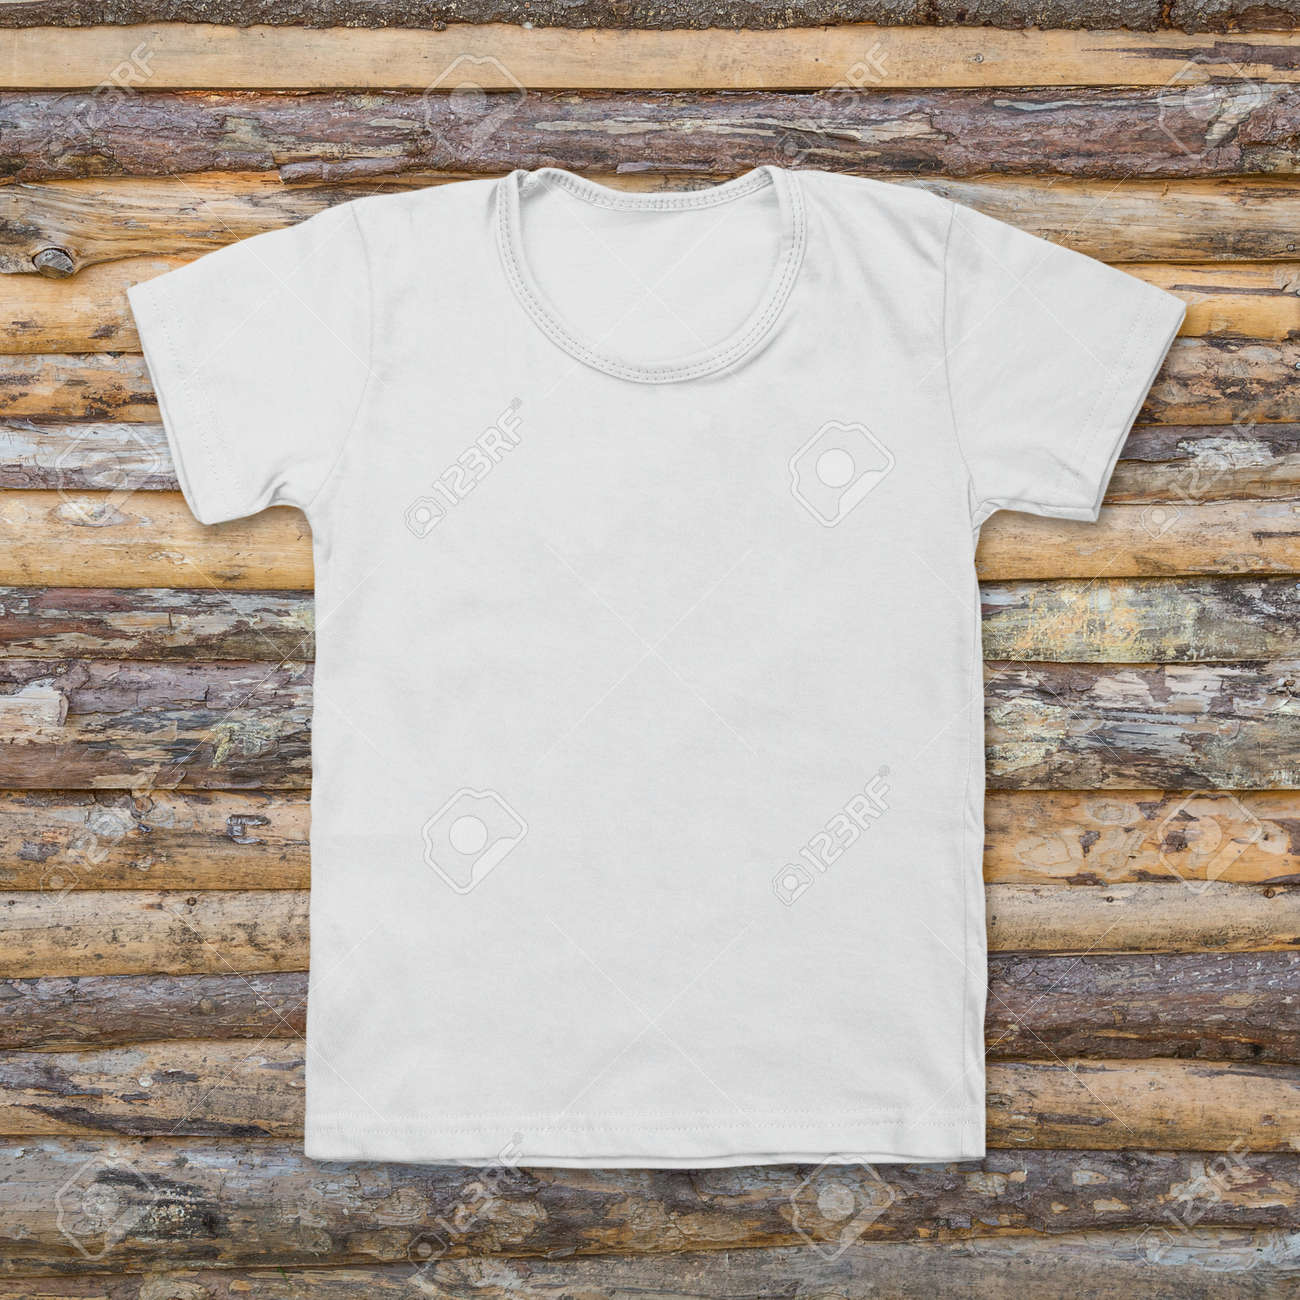 Plain wood table with hipster brick wall background stock photo - In Plain Clothes White Blank T Shirt On Dark Wood Desk Stock Photo